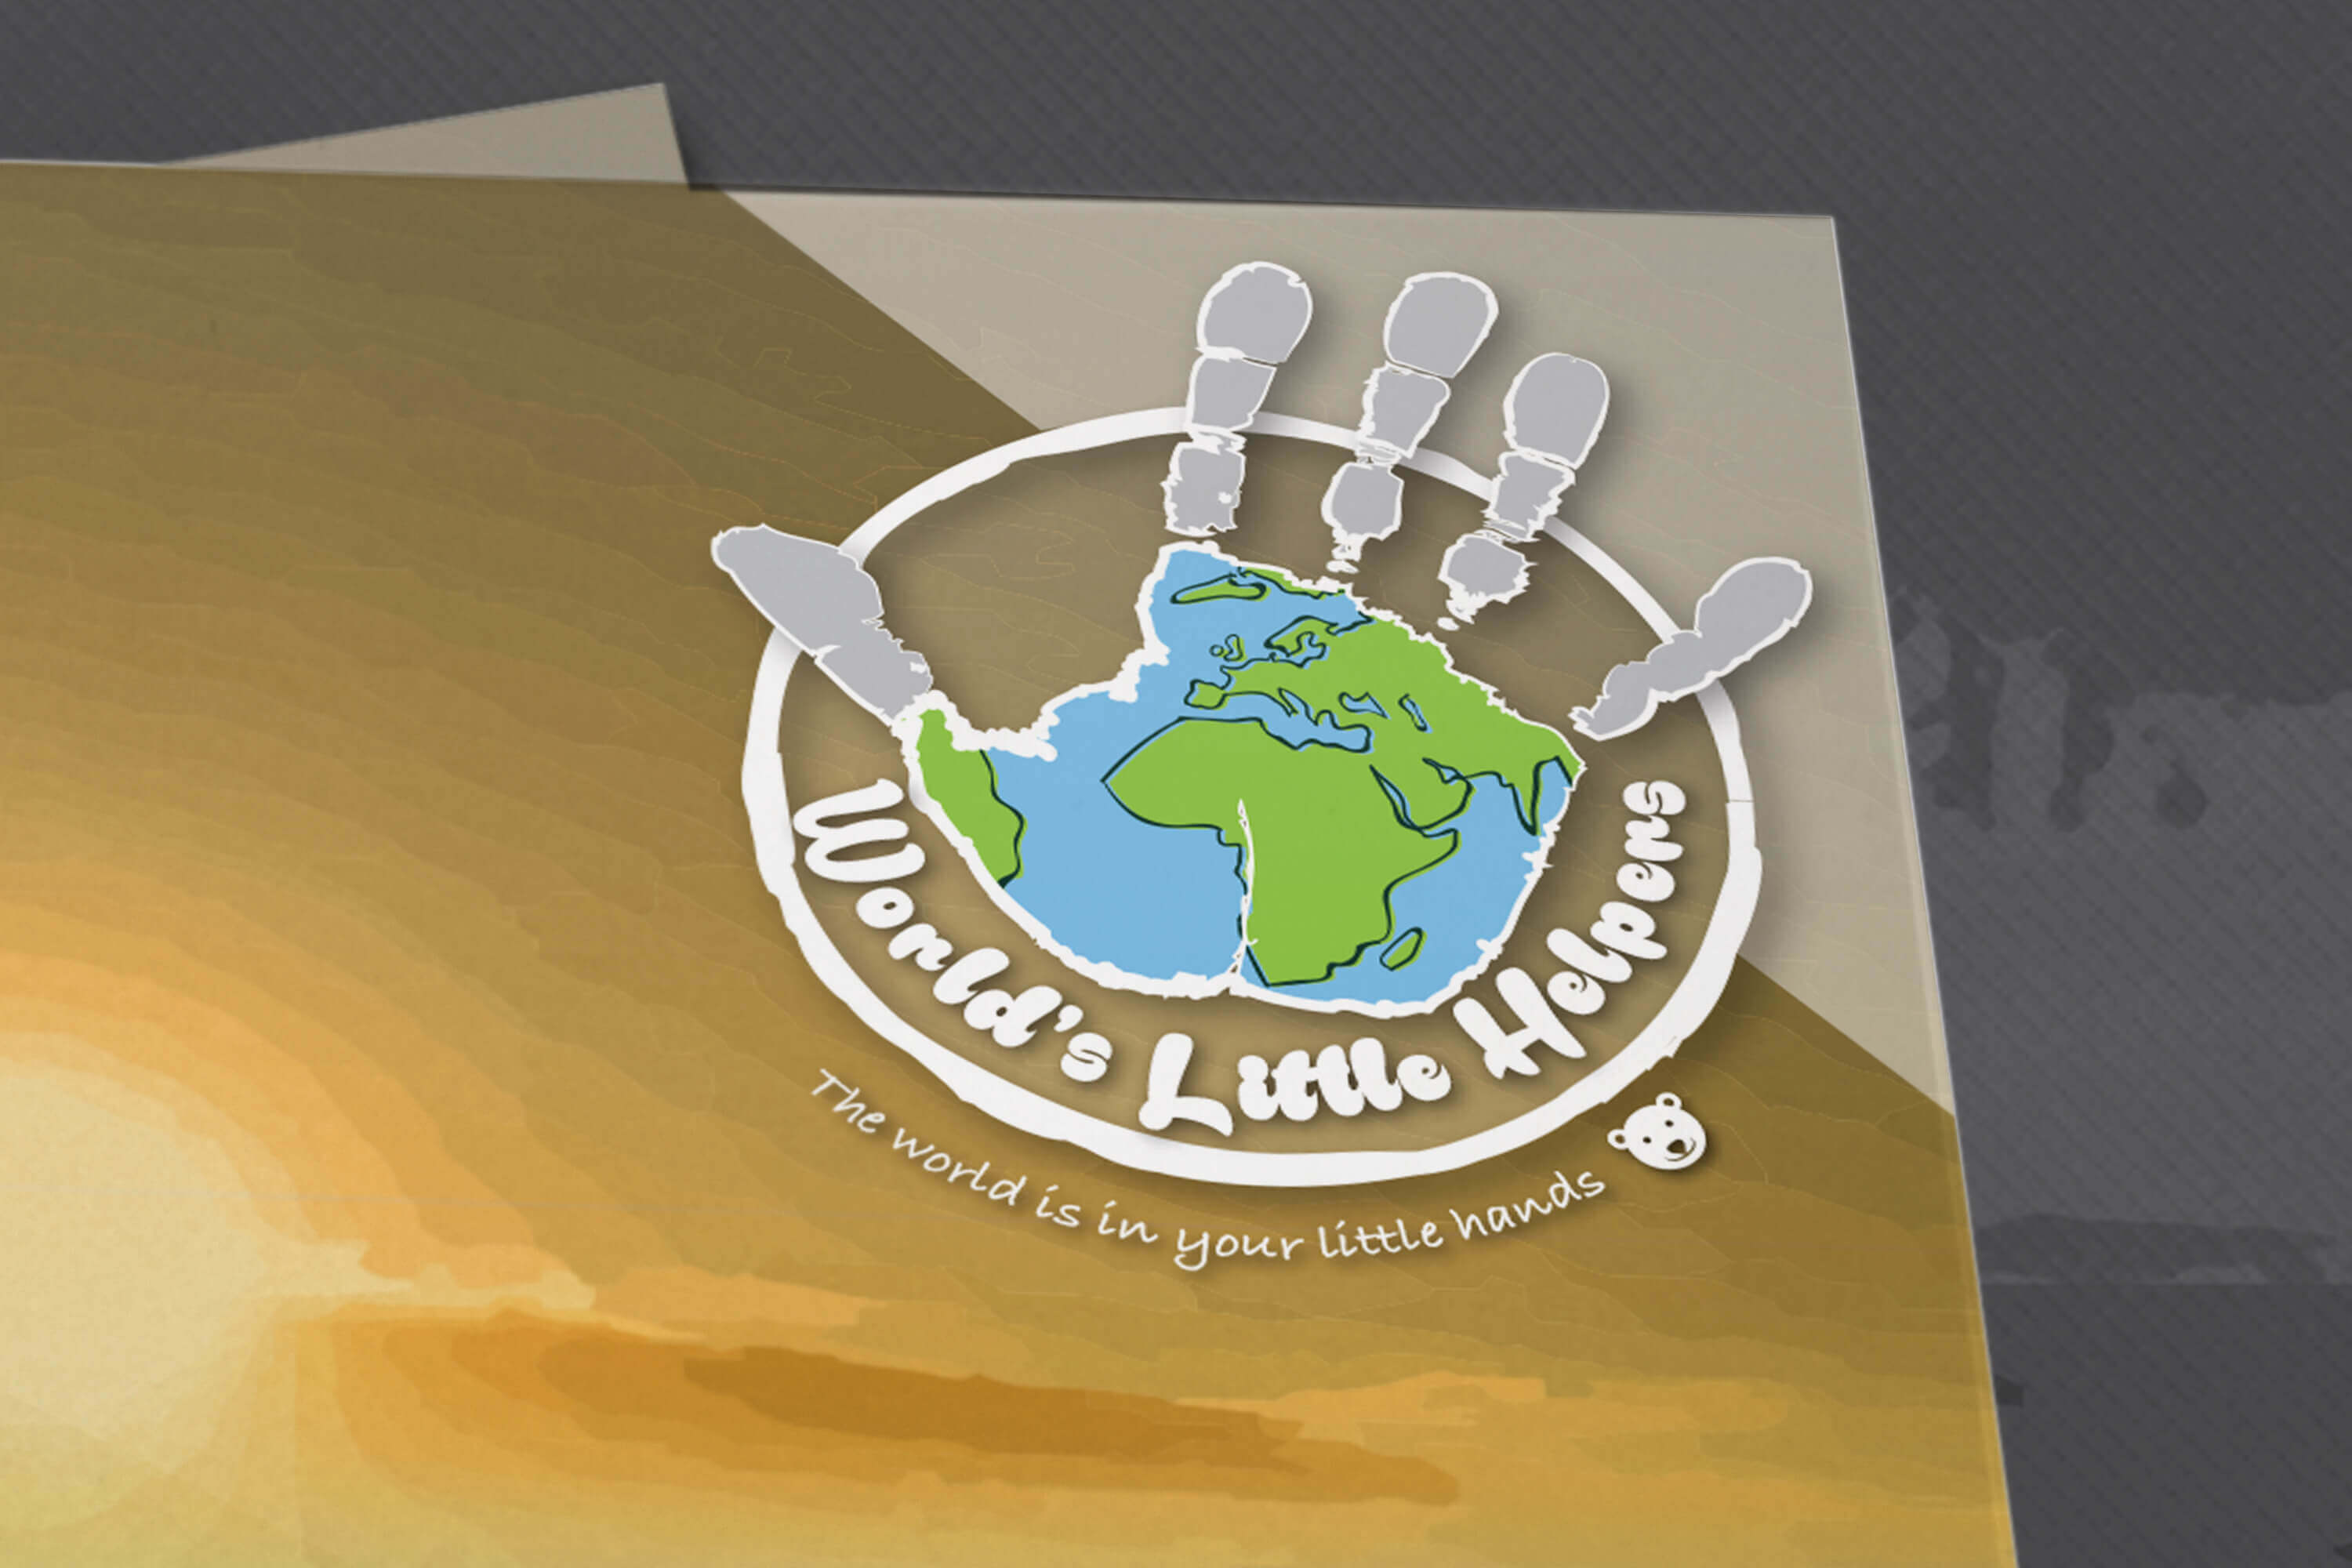 Close up of World's Little Helpers magazine logo on cover of the magazine